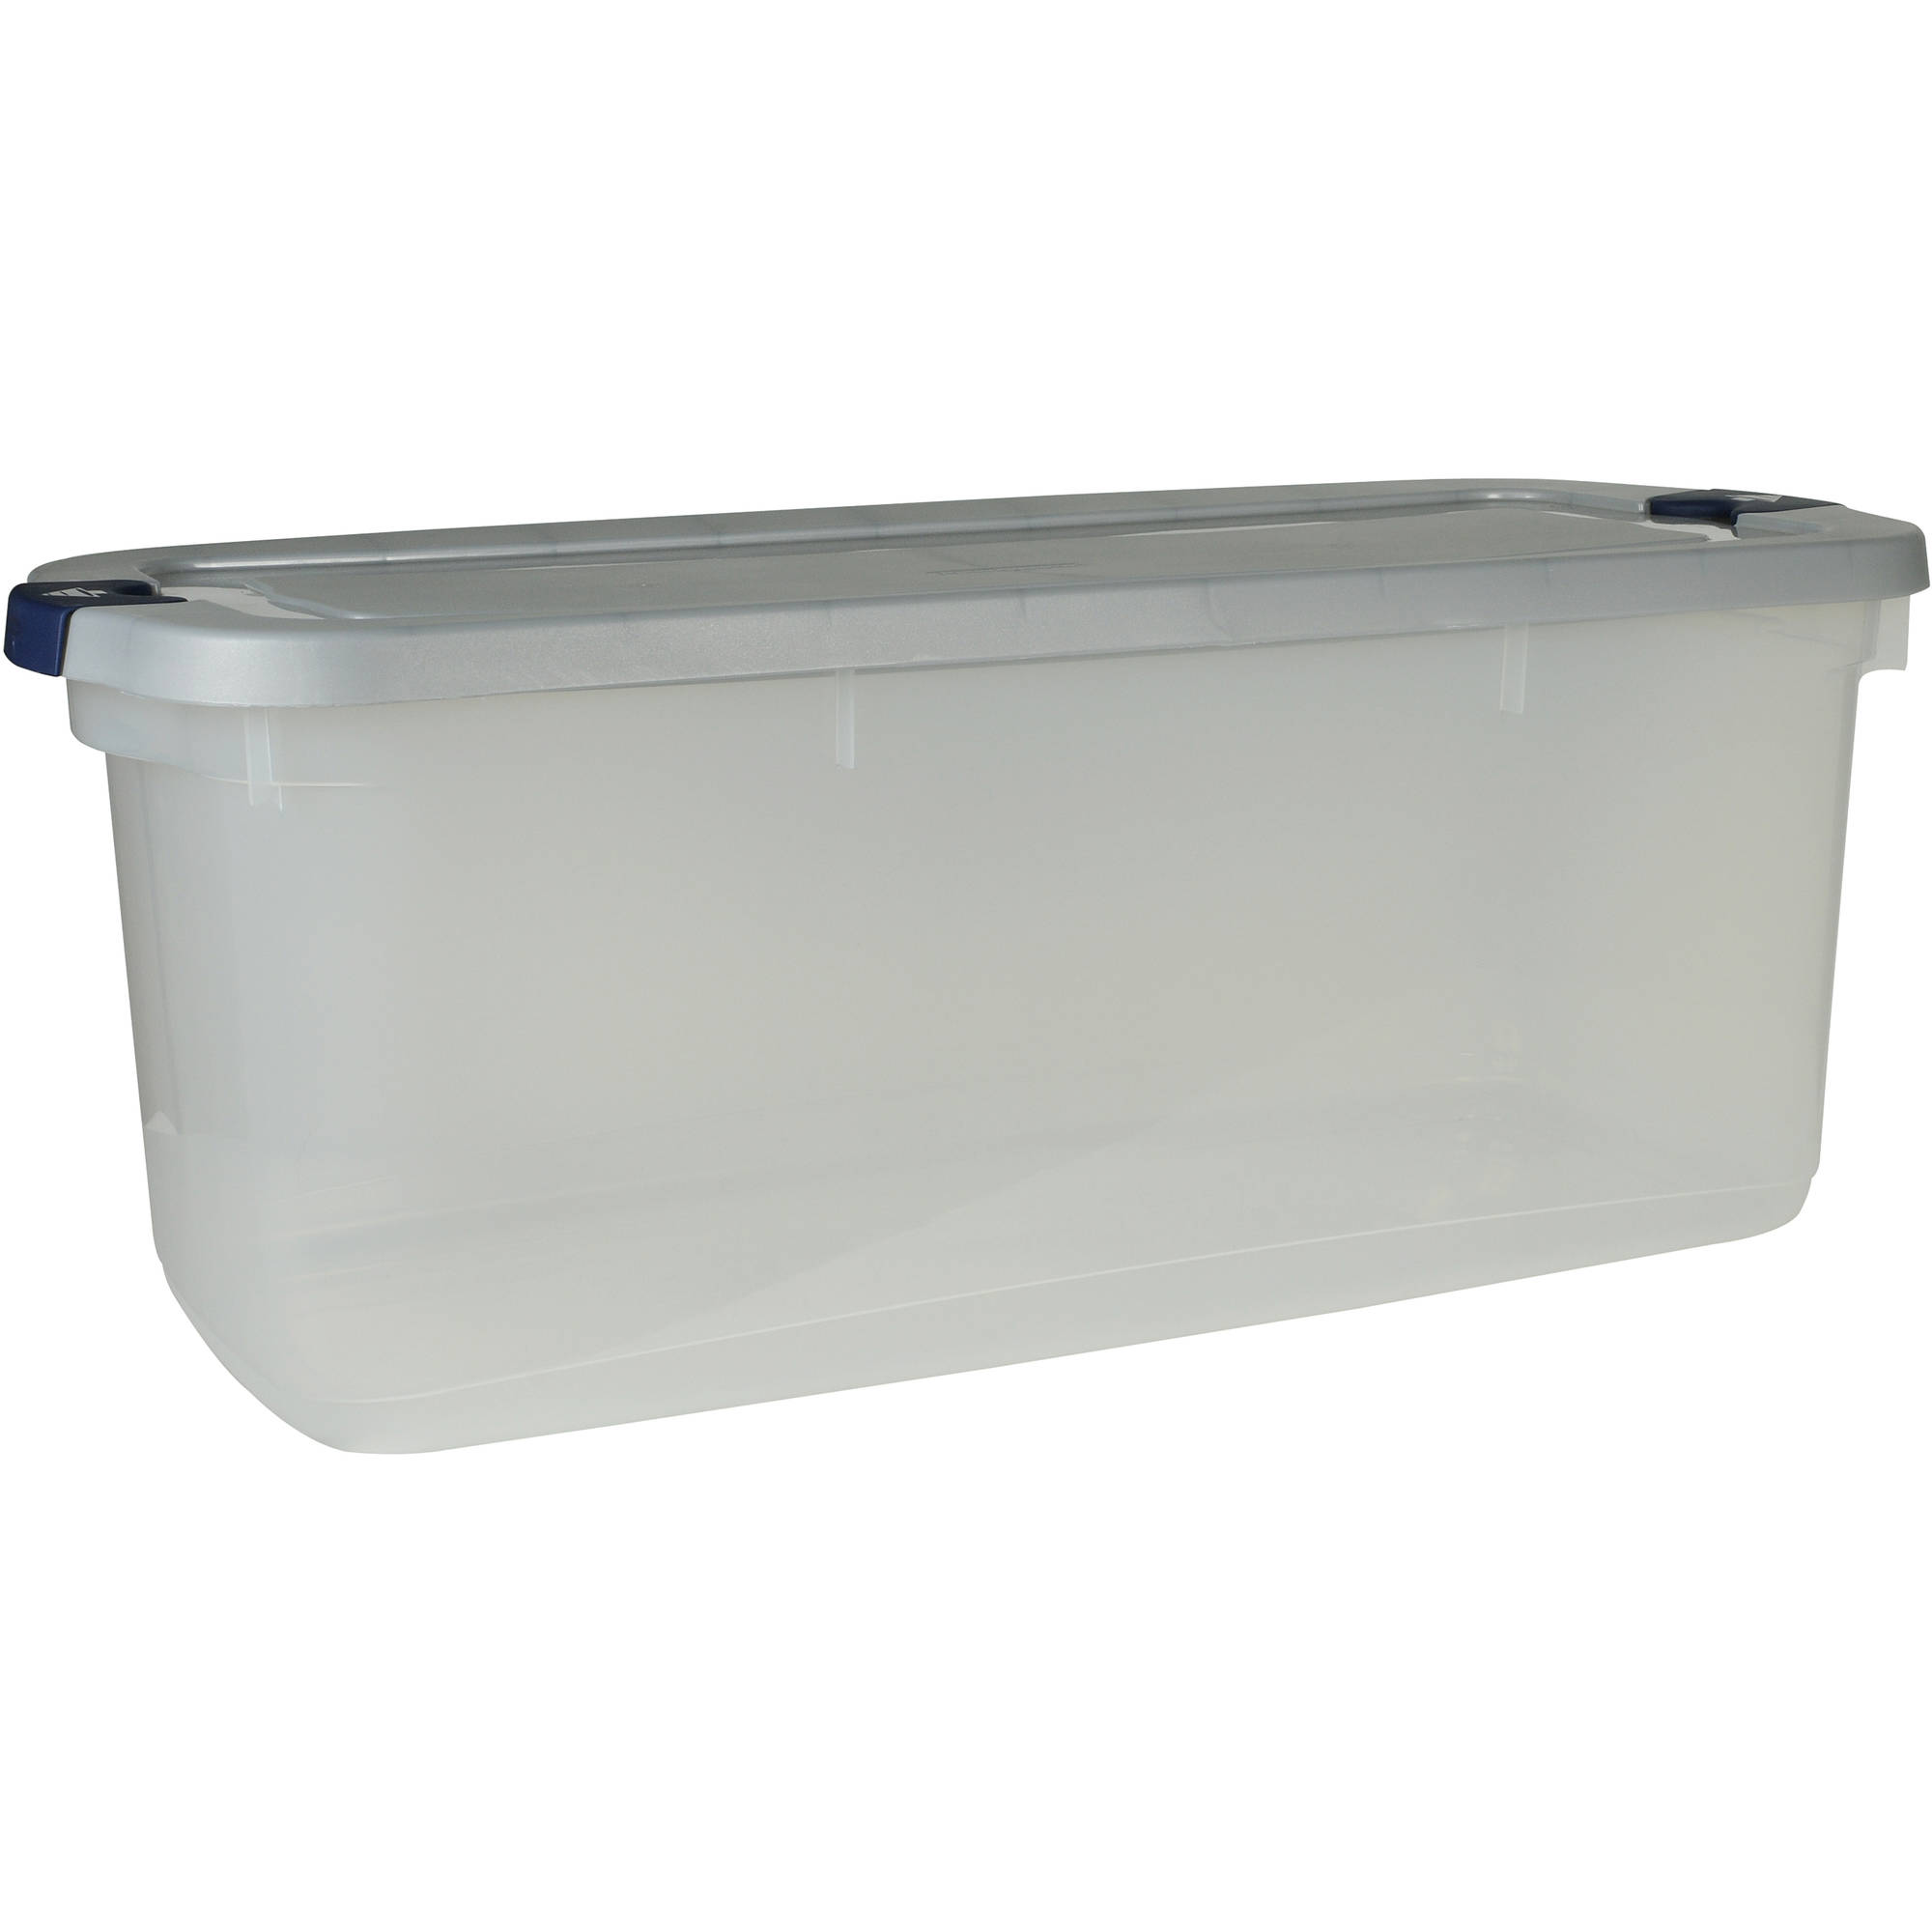 Rubbermaid Roughneck Clears Storage Tote Bins, 95 Qt (23.75 Gal), Clear  With Gray Lid, Set Of 4   Walmart.com